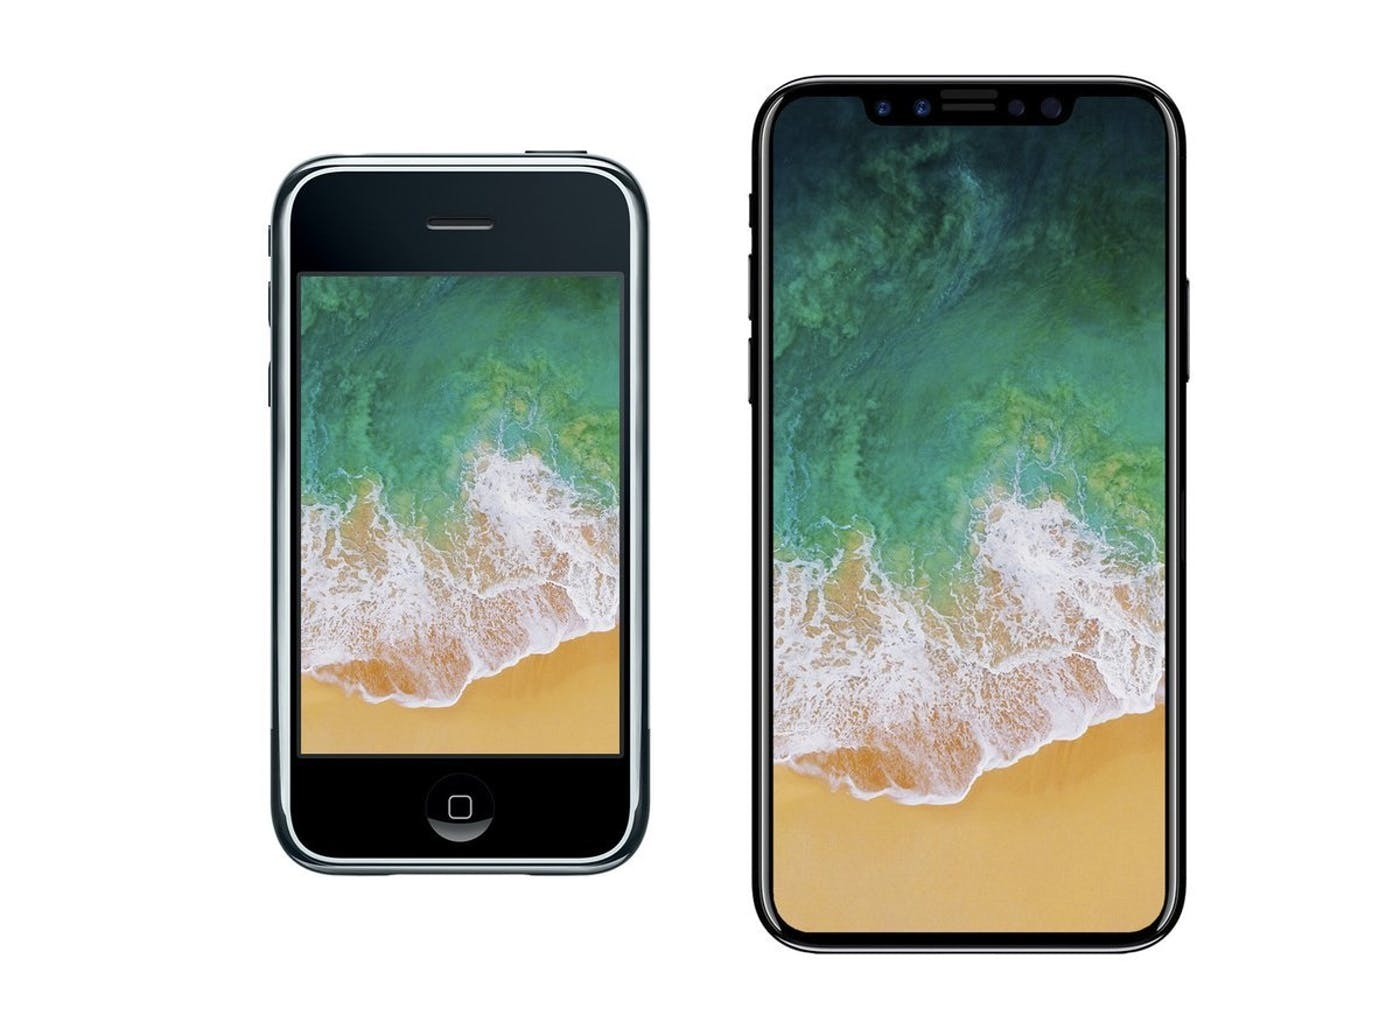 The original iPhone left compared to the rumored iPhone 8